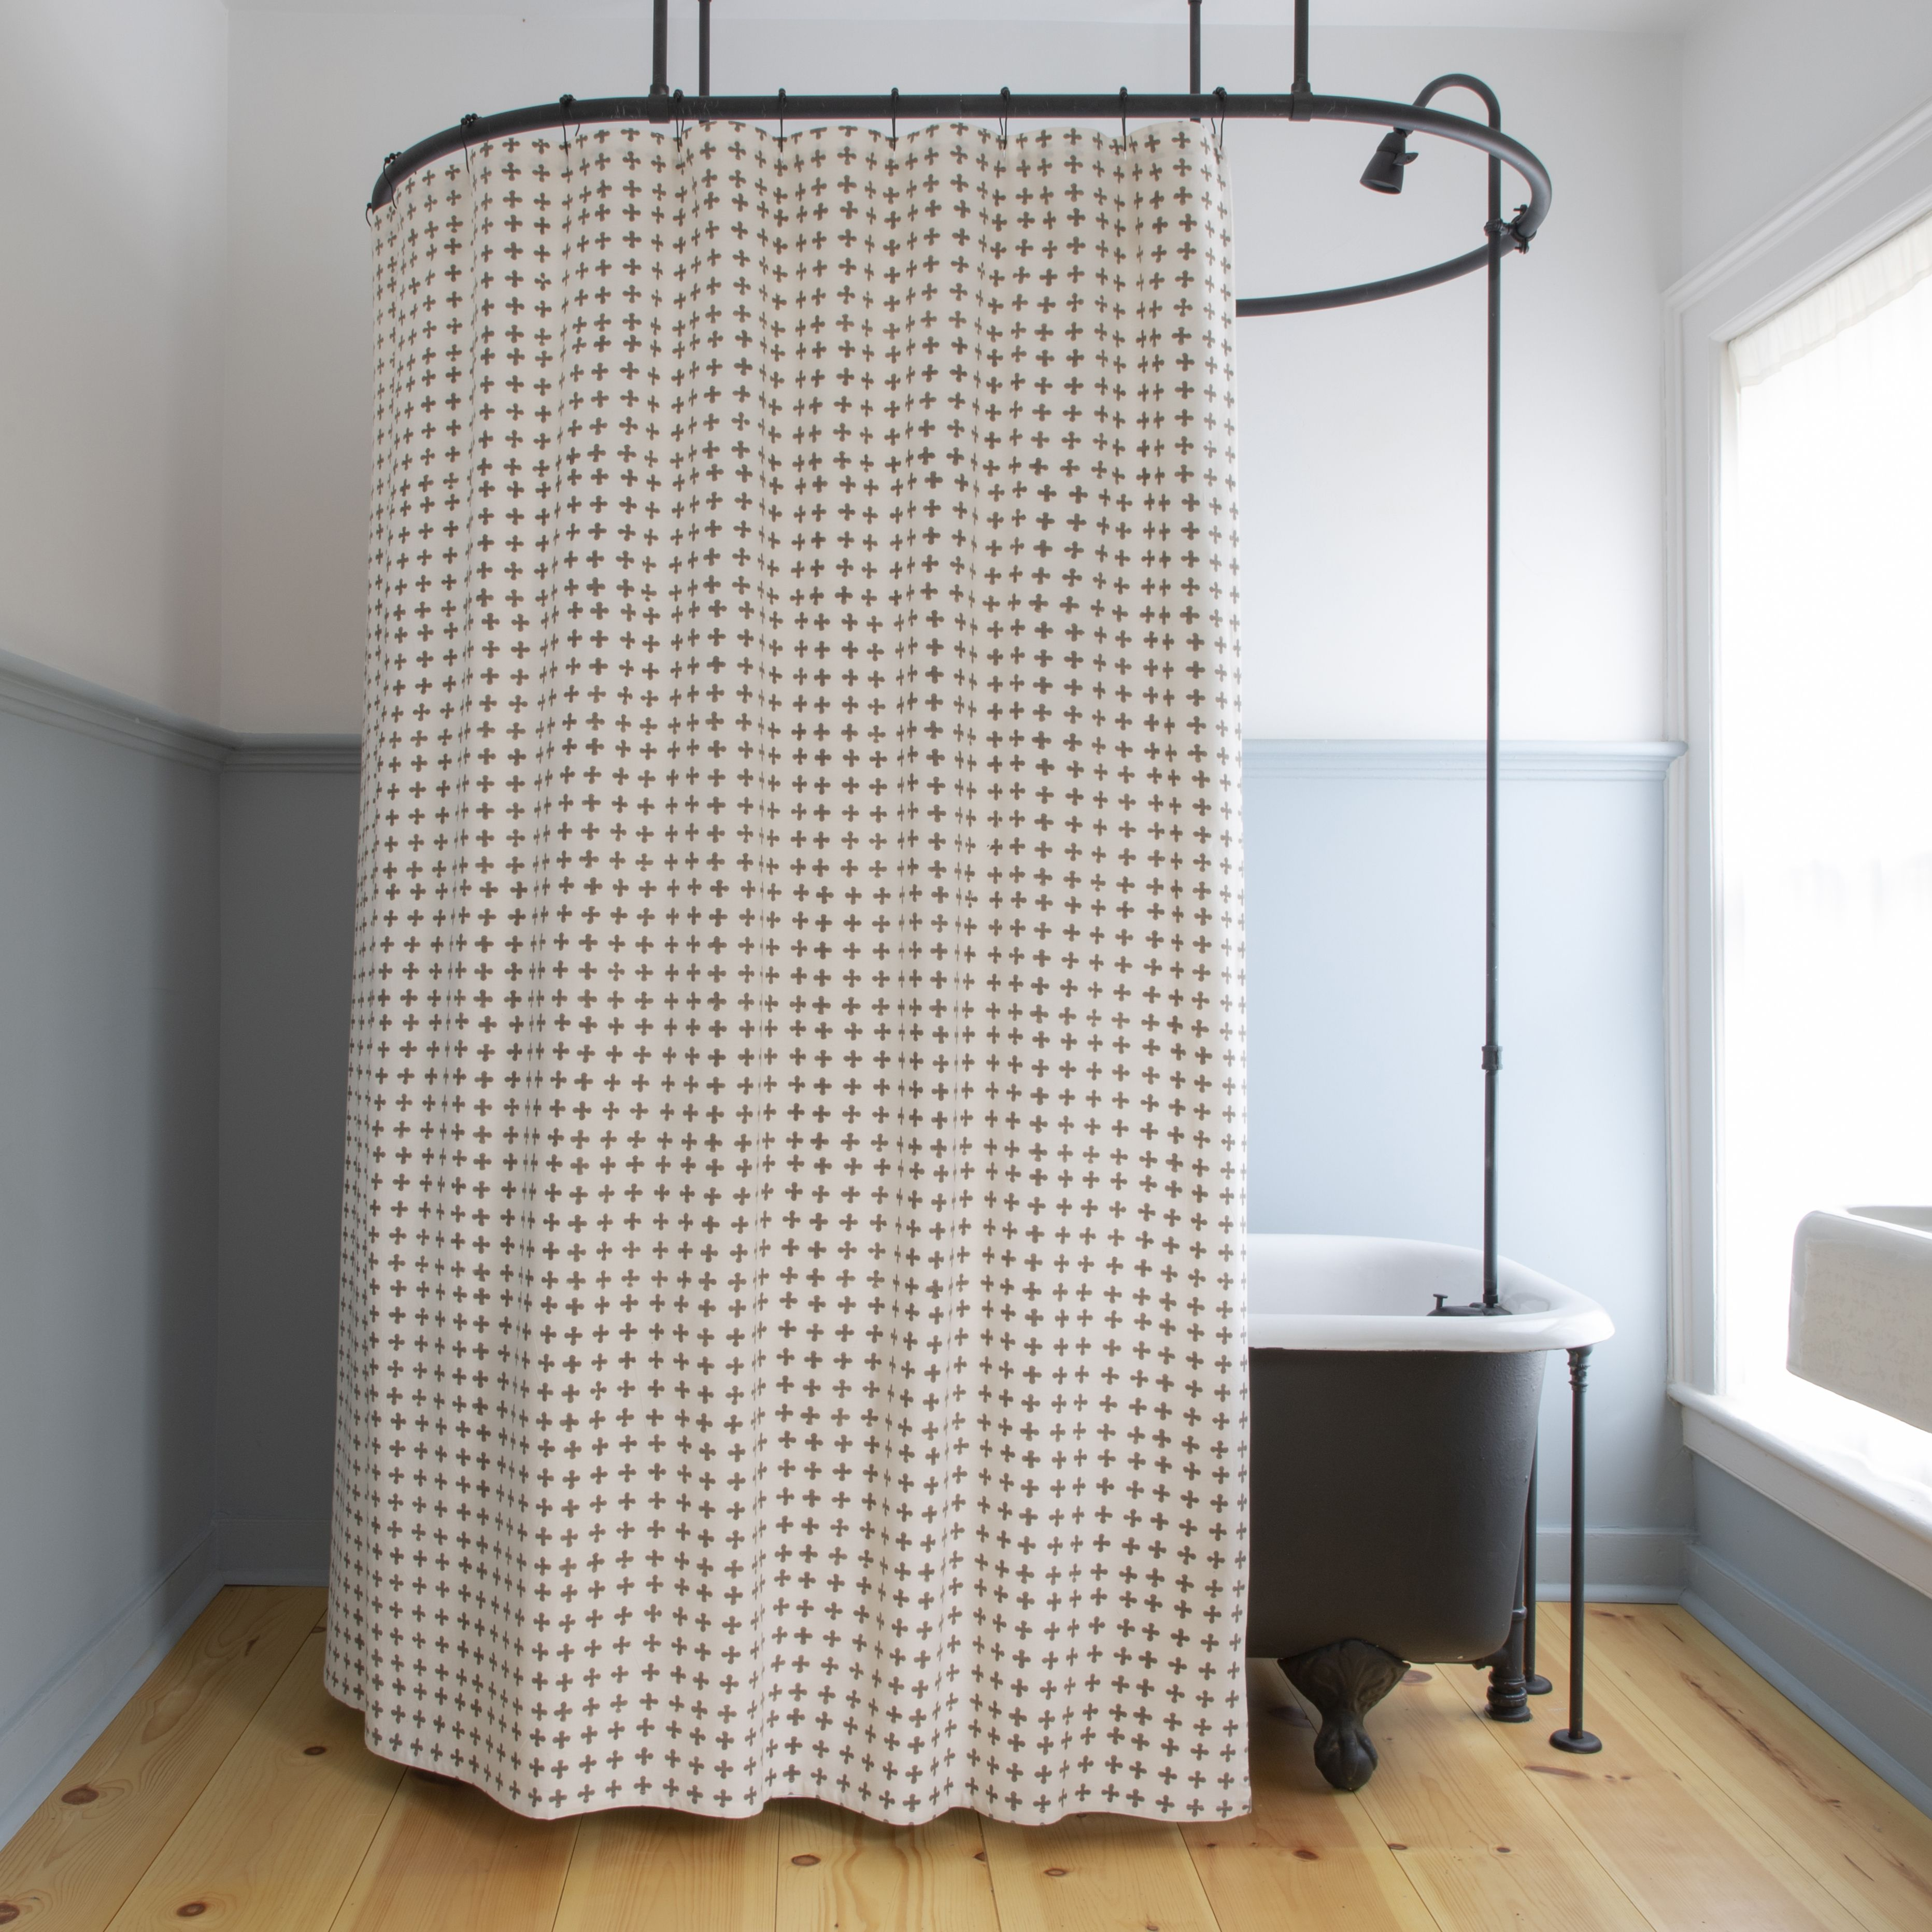 Petite Croix Shower Curtain In French Grey Small Shower Remodel Shower Remodel Tub To Shower Remodel